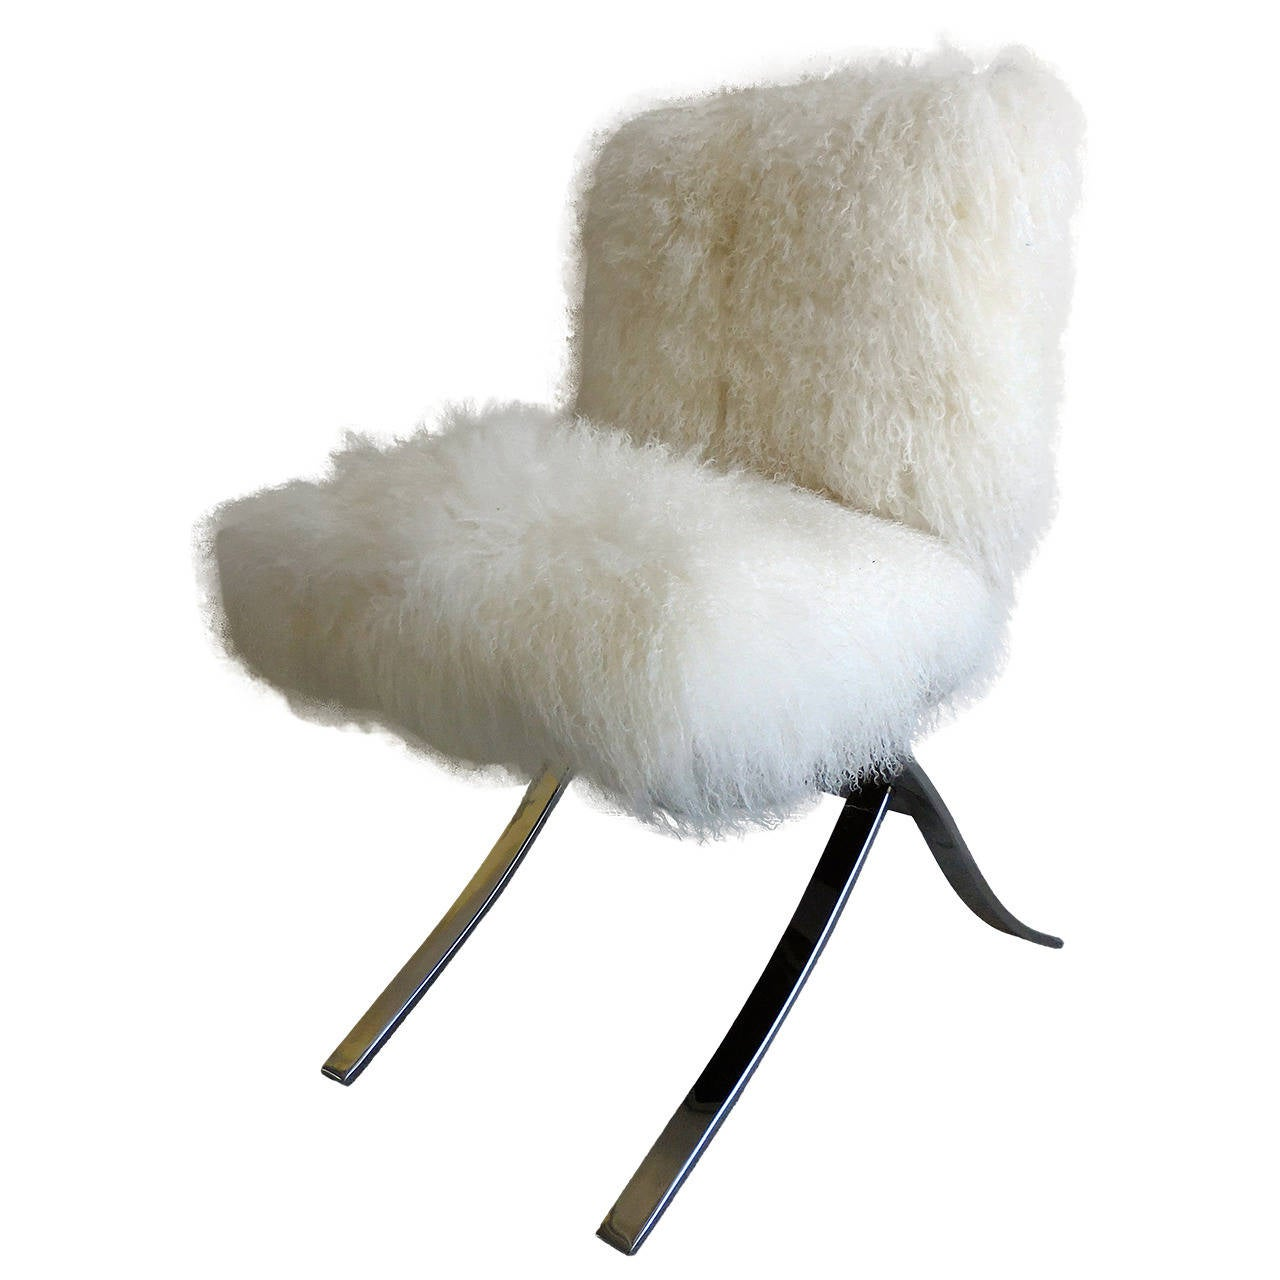 Playfully Fluffy ChromePlated Chair Upholstered in